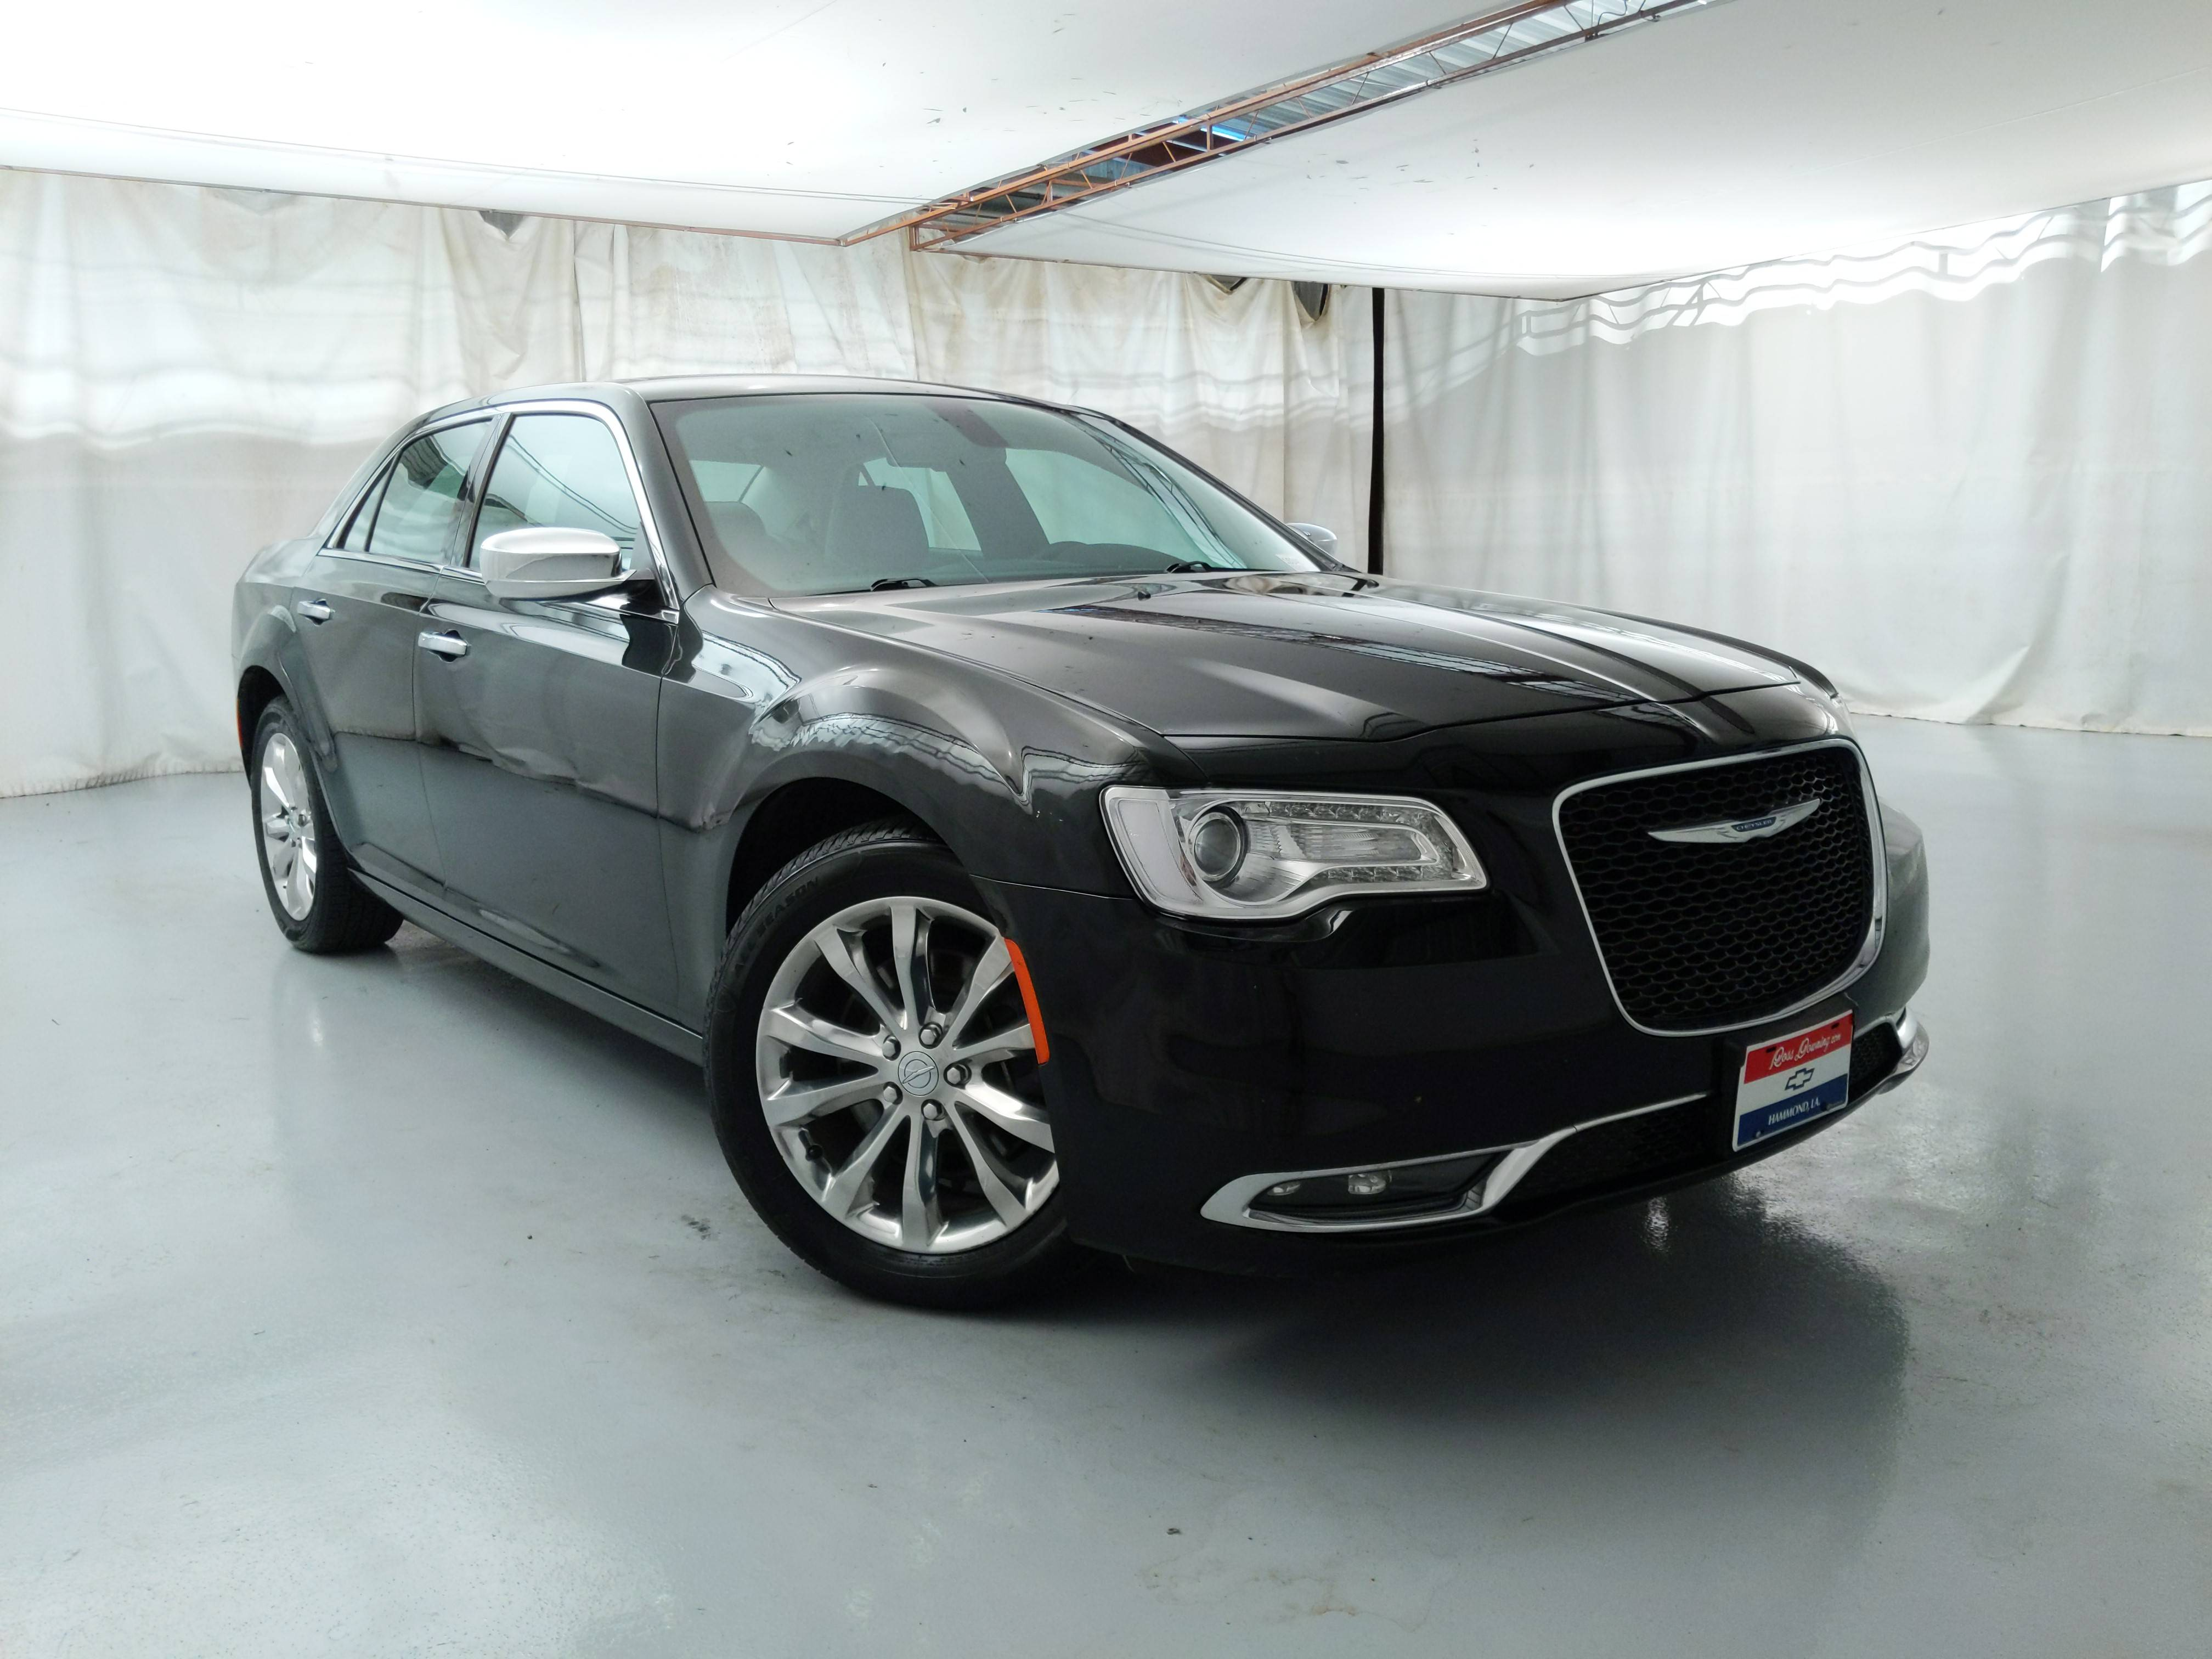 Ross Downing Hammond La >> Used Chrysler 300 At Ross Downing In Hammond And Gonzales